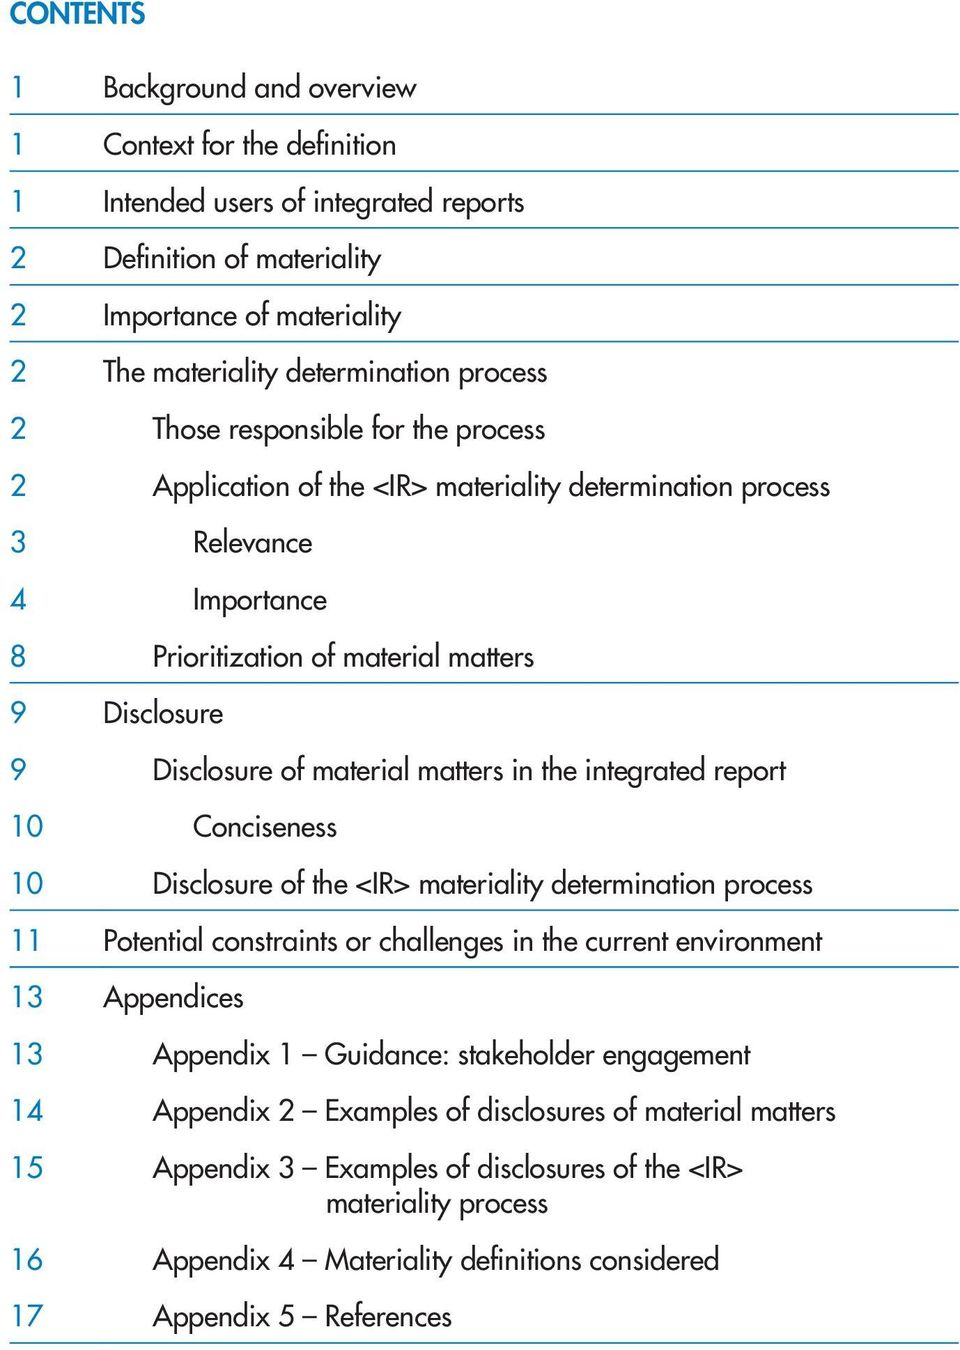 matters in the integrated report 10 Conciseness 10 Disclosure of the <IR> materiality determination process 11 Potential constraints or challenges in the current environment 13 Appendices 13 Appendix